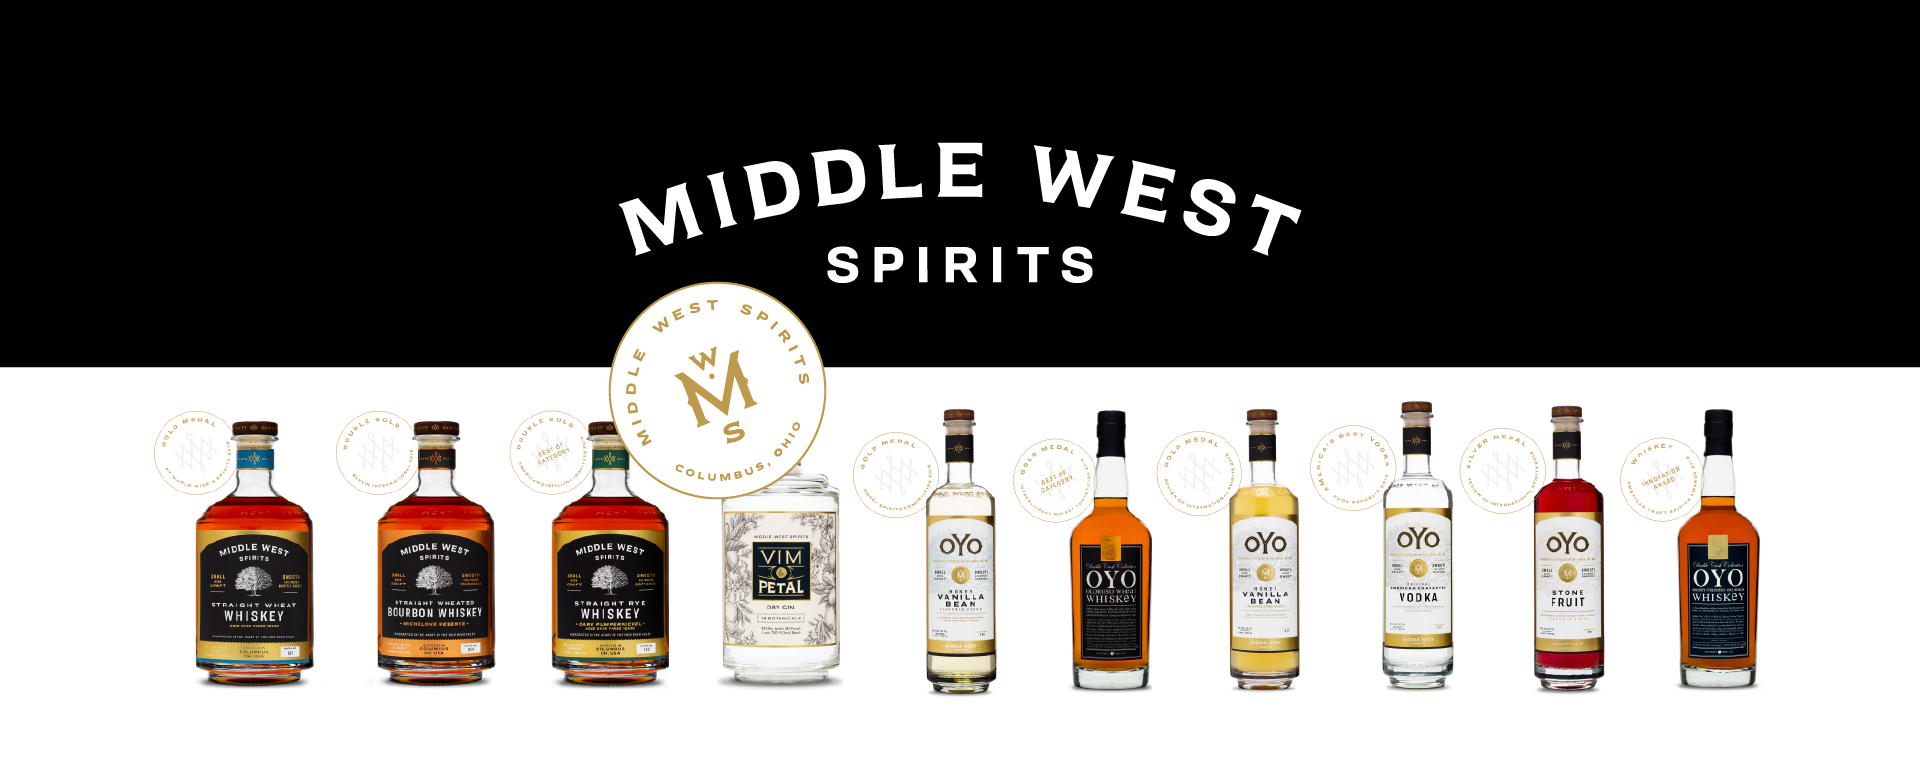 Imperial Beverage Middle West Spirits